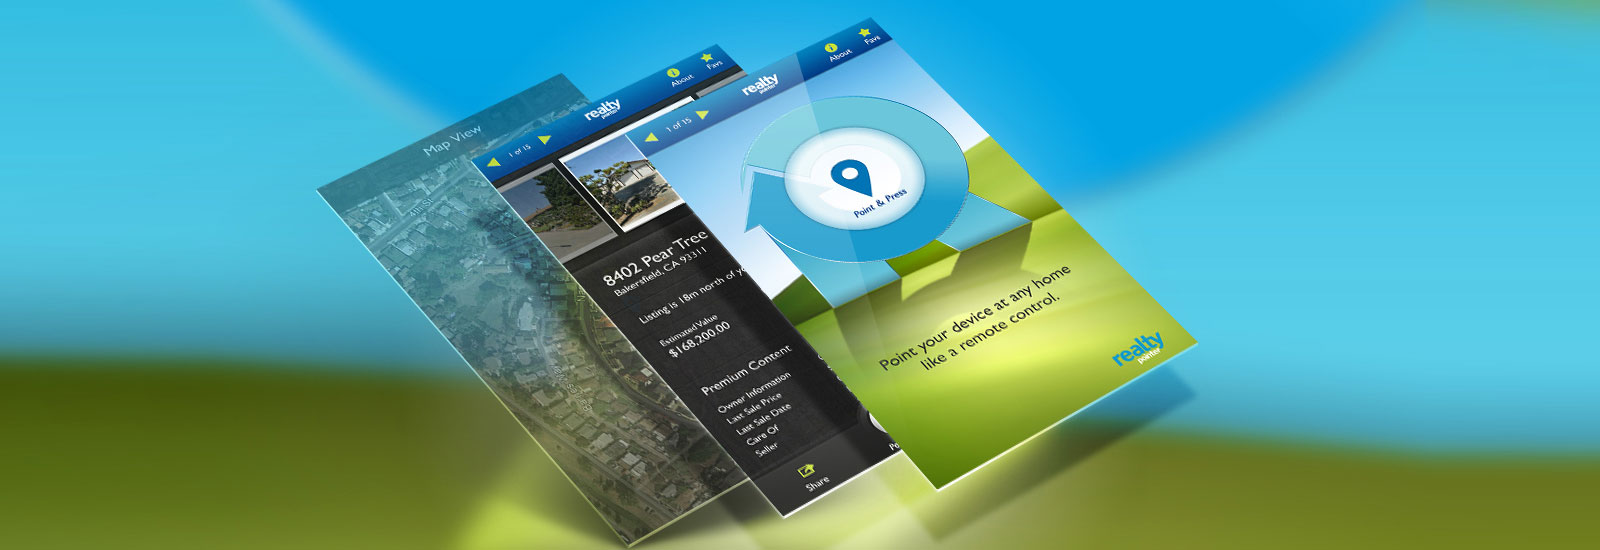 Realty Pointer High Quality Apps for iPhone | iPad | Android | UI